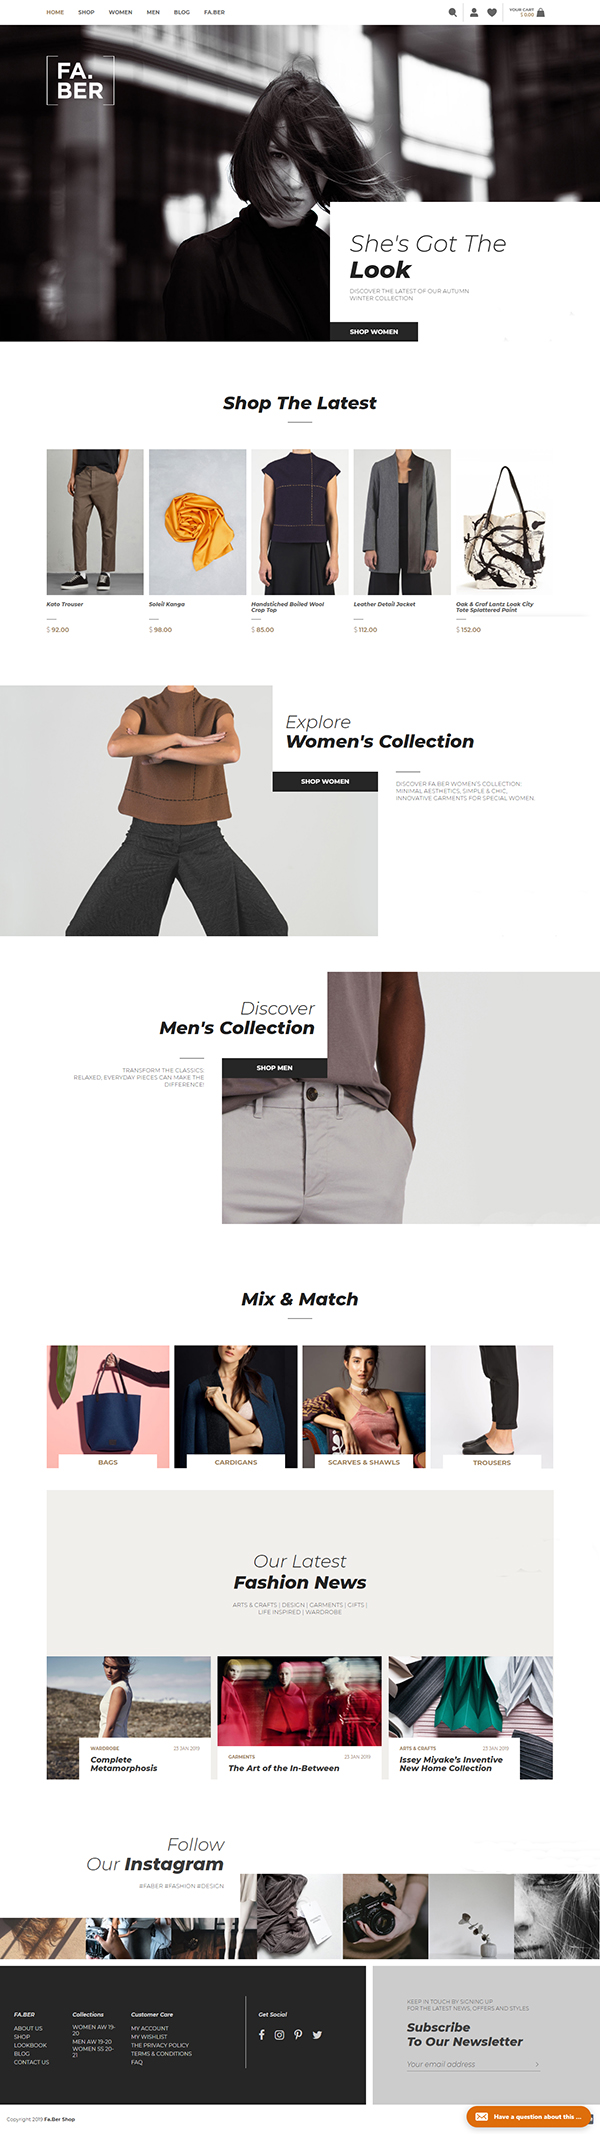 Faber - Woocommerce Fashion Shop & Blog WordPress Theme